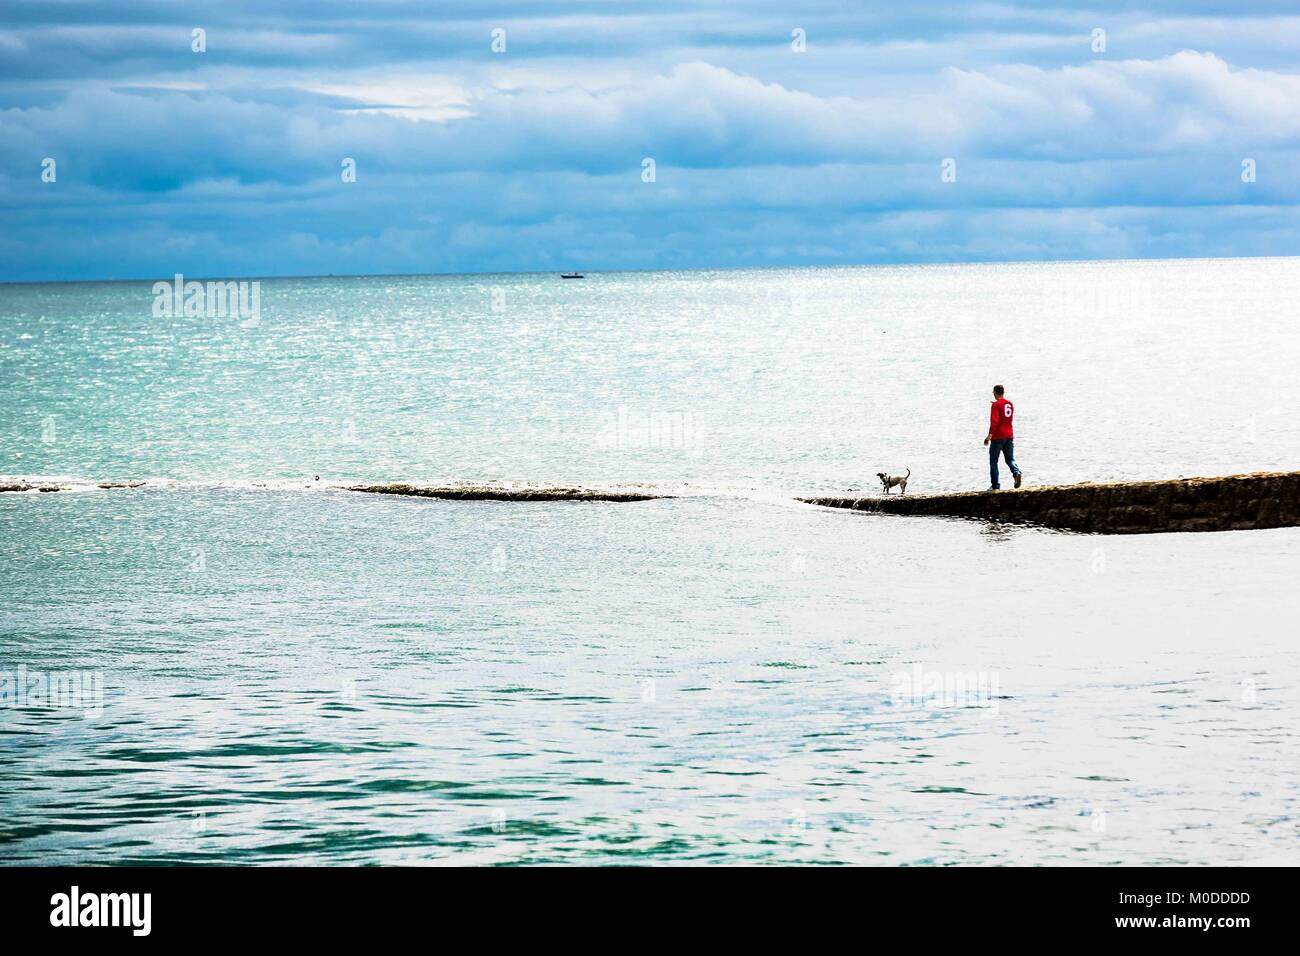 Man exercise walking a dog along a concrete jetty into the sea. - Stock Image